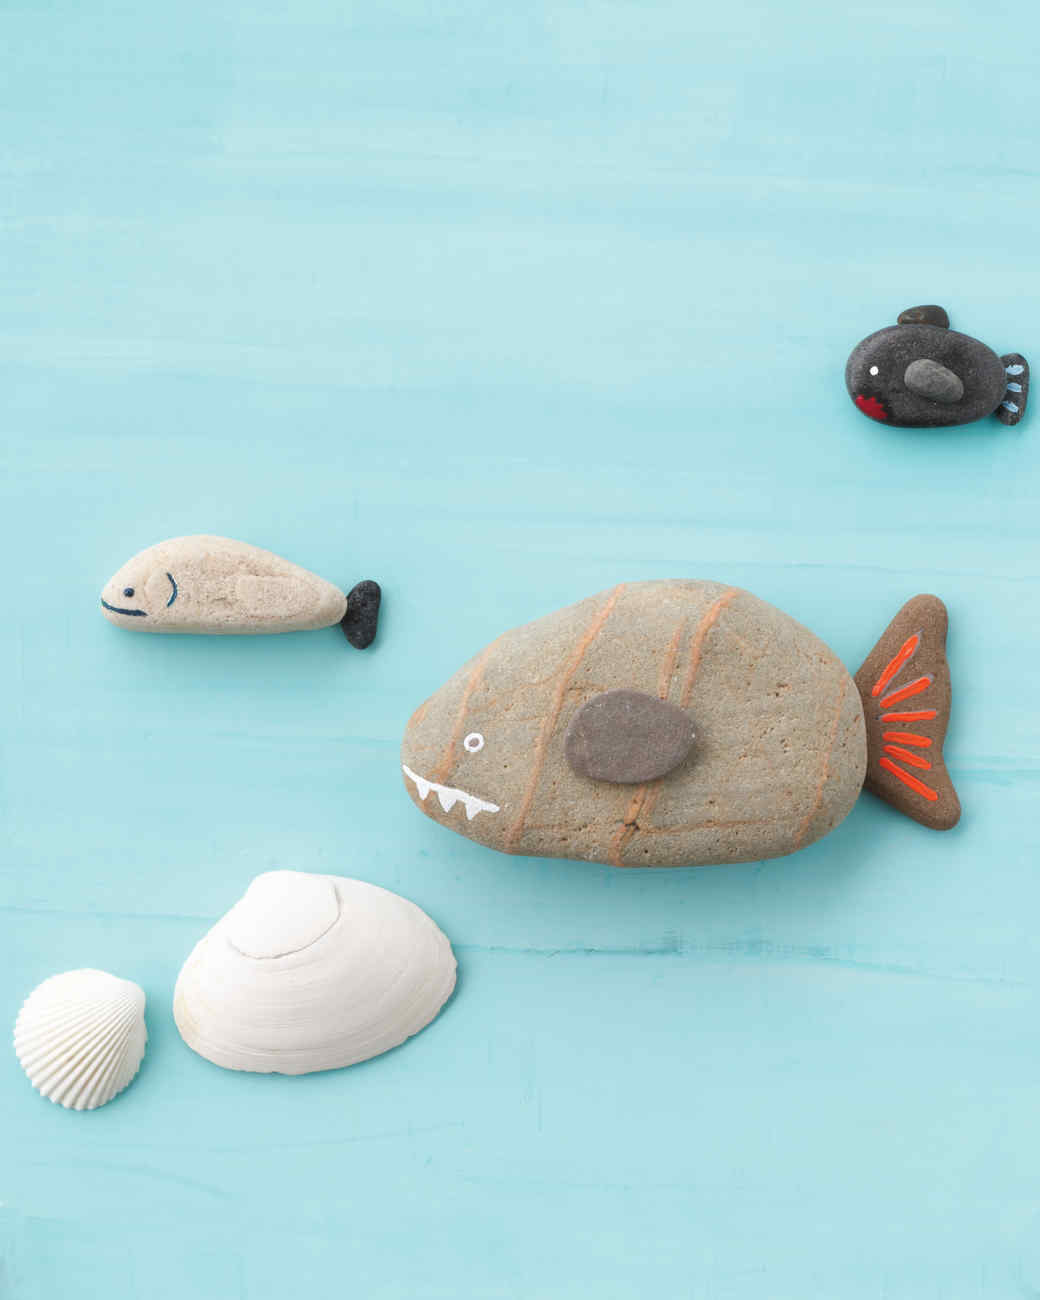 kids-crafts-book-rock-fish-629.jpg